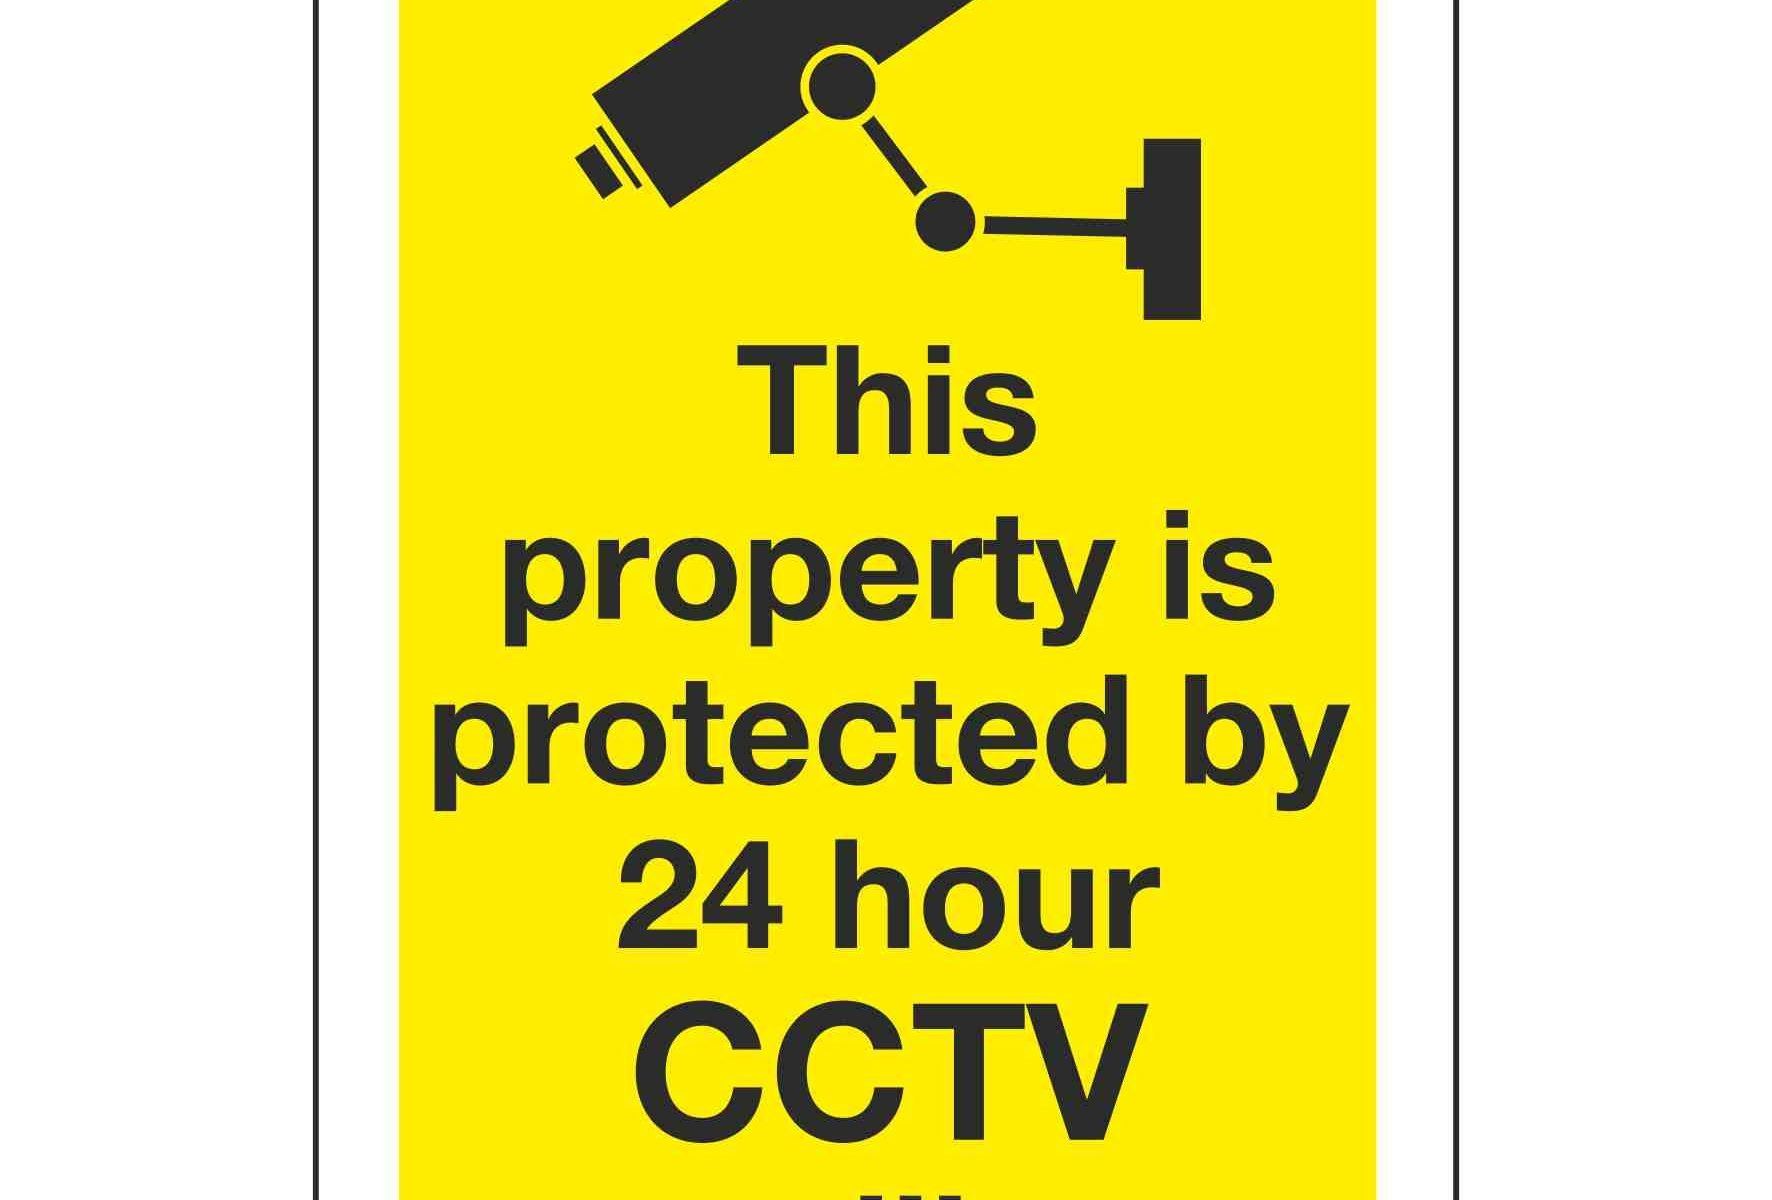 This property is protected by 24 hour CCTV surveillance